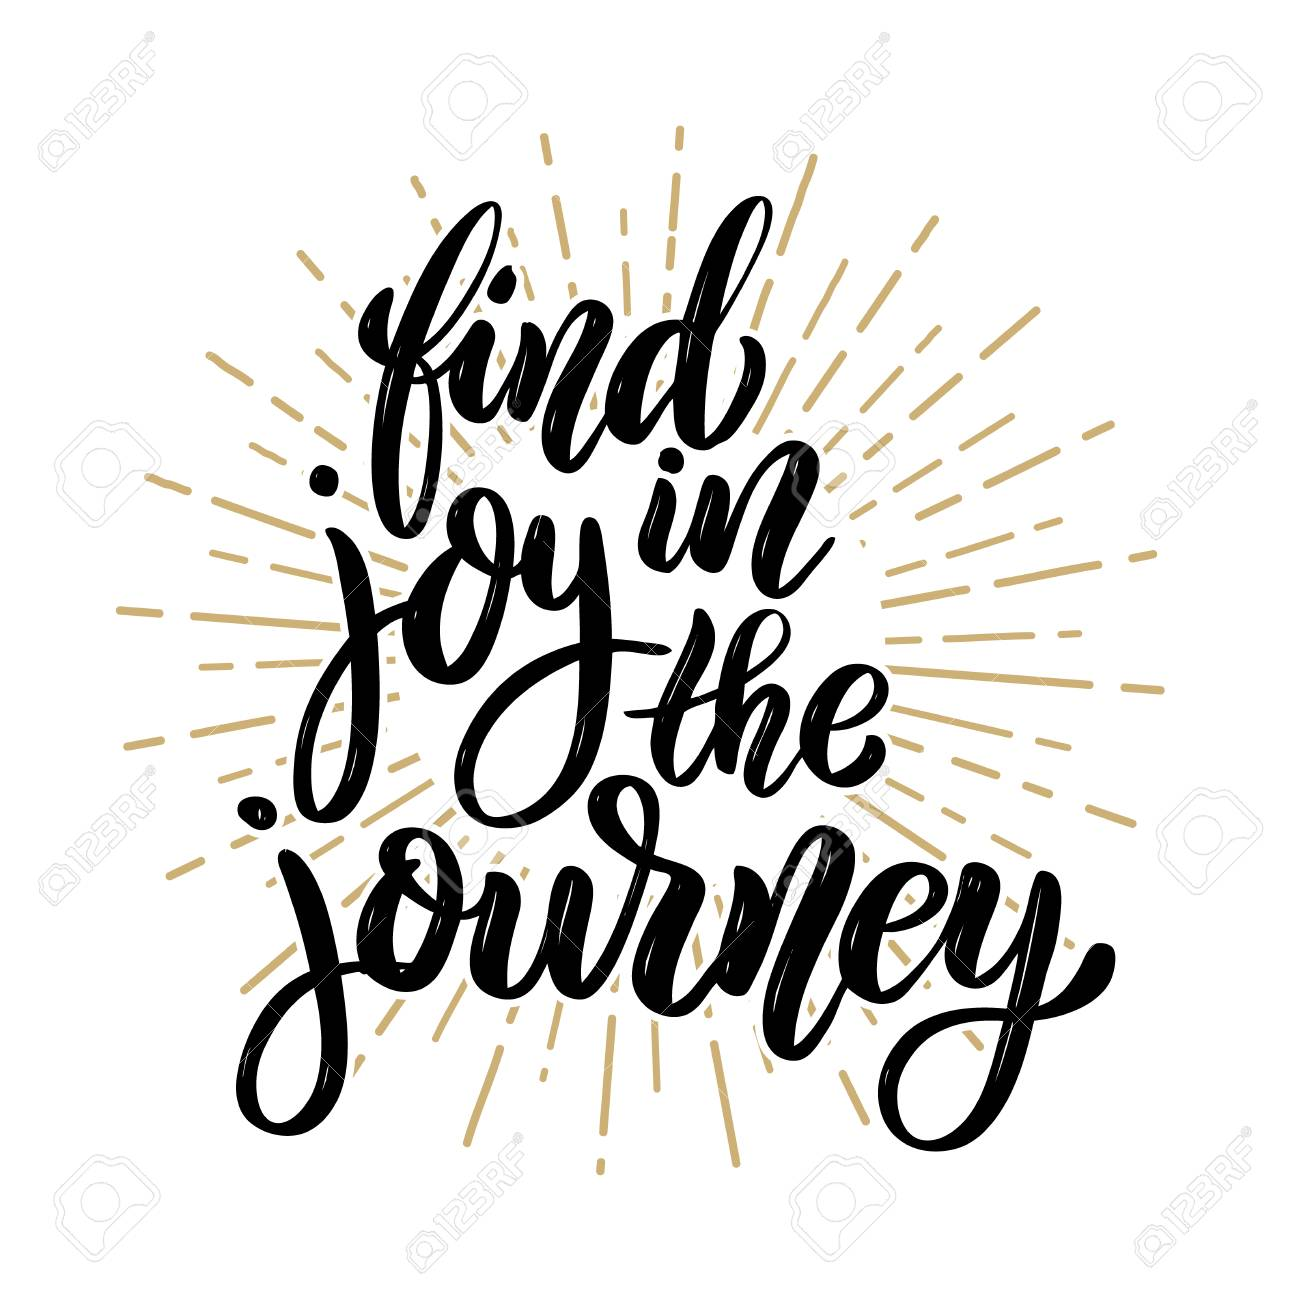 Find Joy In The Journey Hand Drawn Motivation Lettering Quote